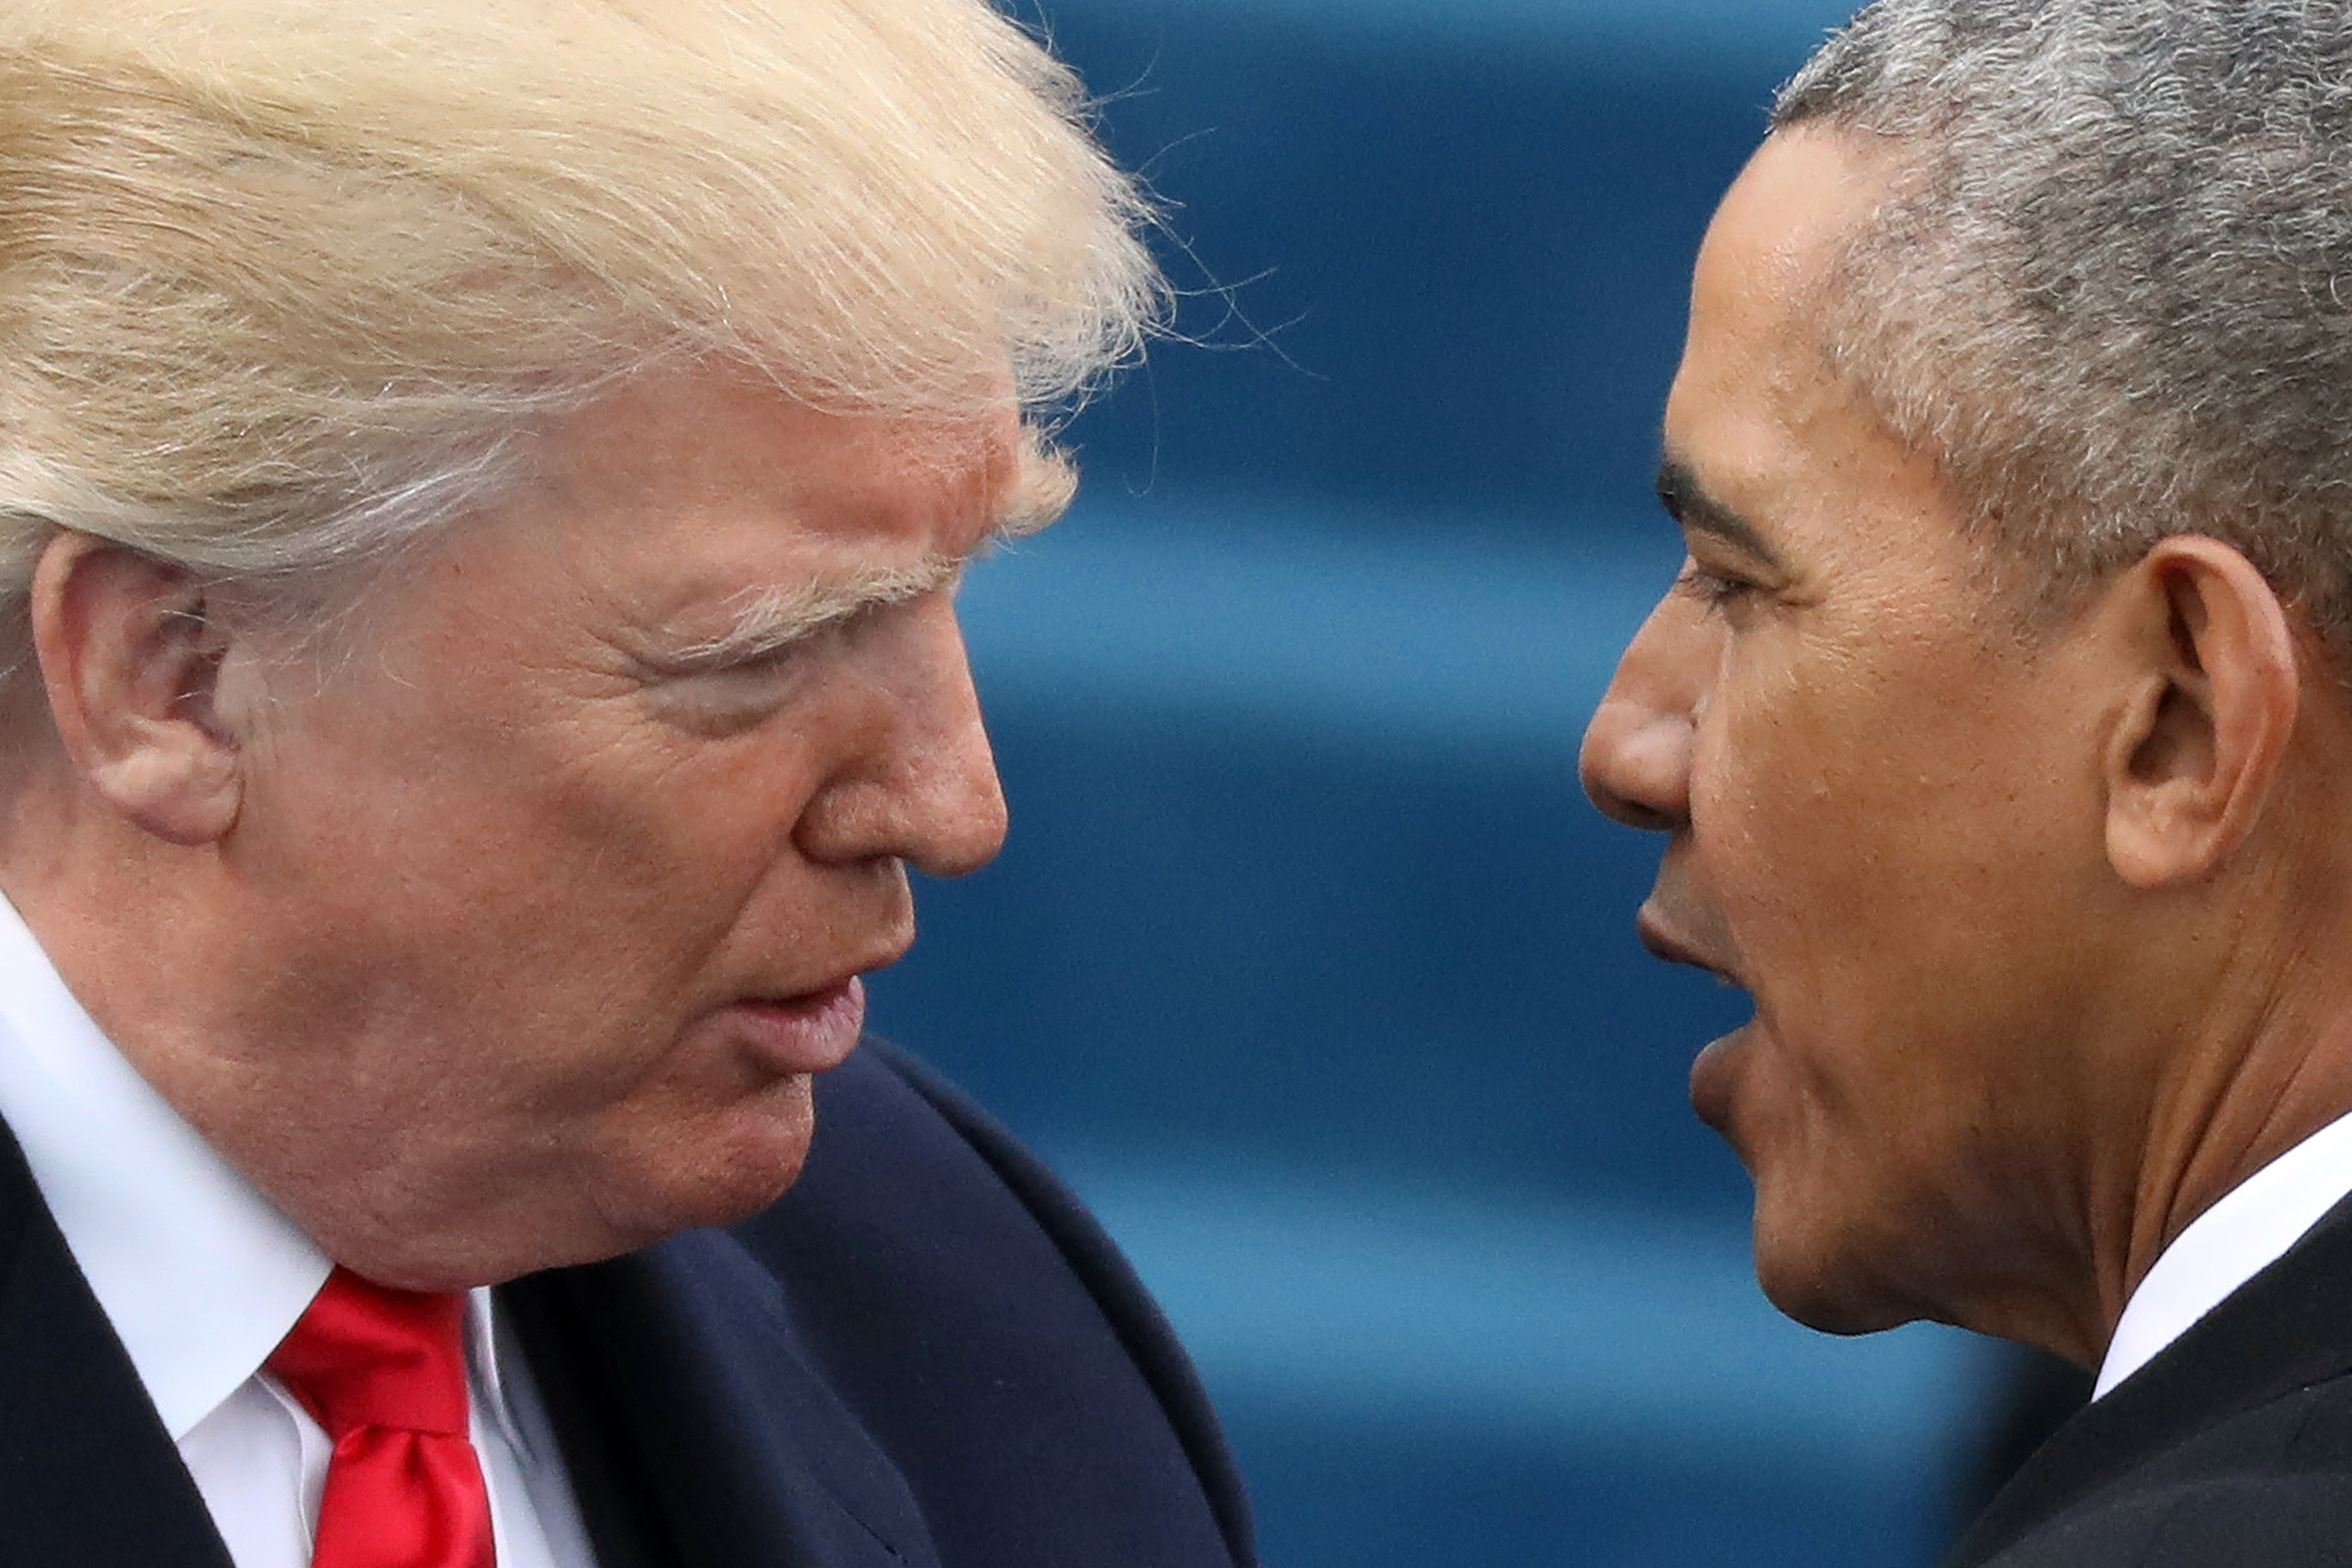 President Barack Obama greets President-elect Donald Trump at inauguration ceremonies swearing in Trump as president on the west front of the U.S. Capitol in Washington, DC January 20, 2017. REUTERS/Carlos Barria